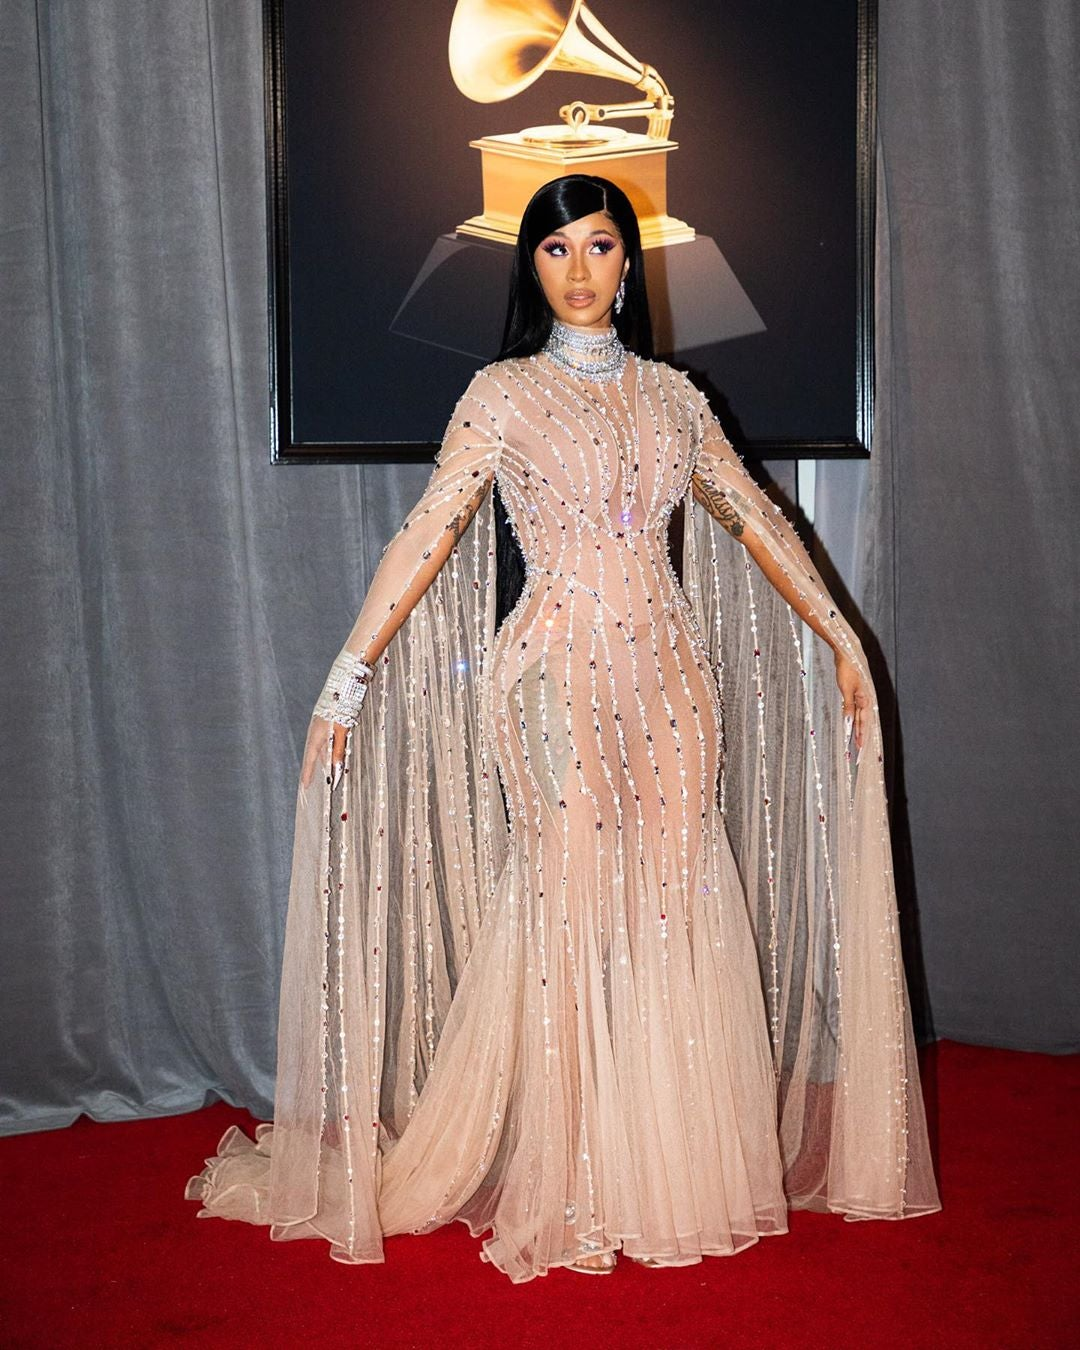 Cardi B Steals Grammys 2020 With This Comely Look Off The Red Carpet